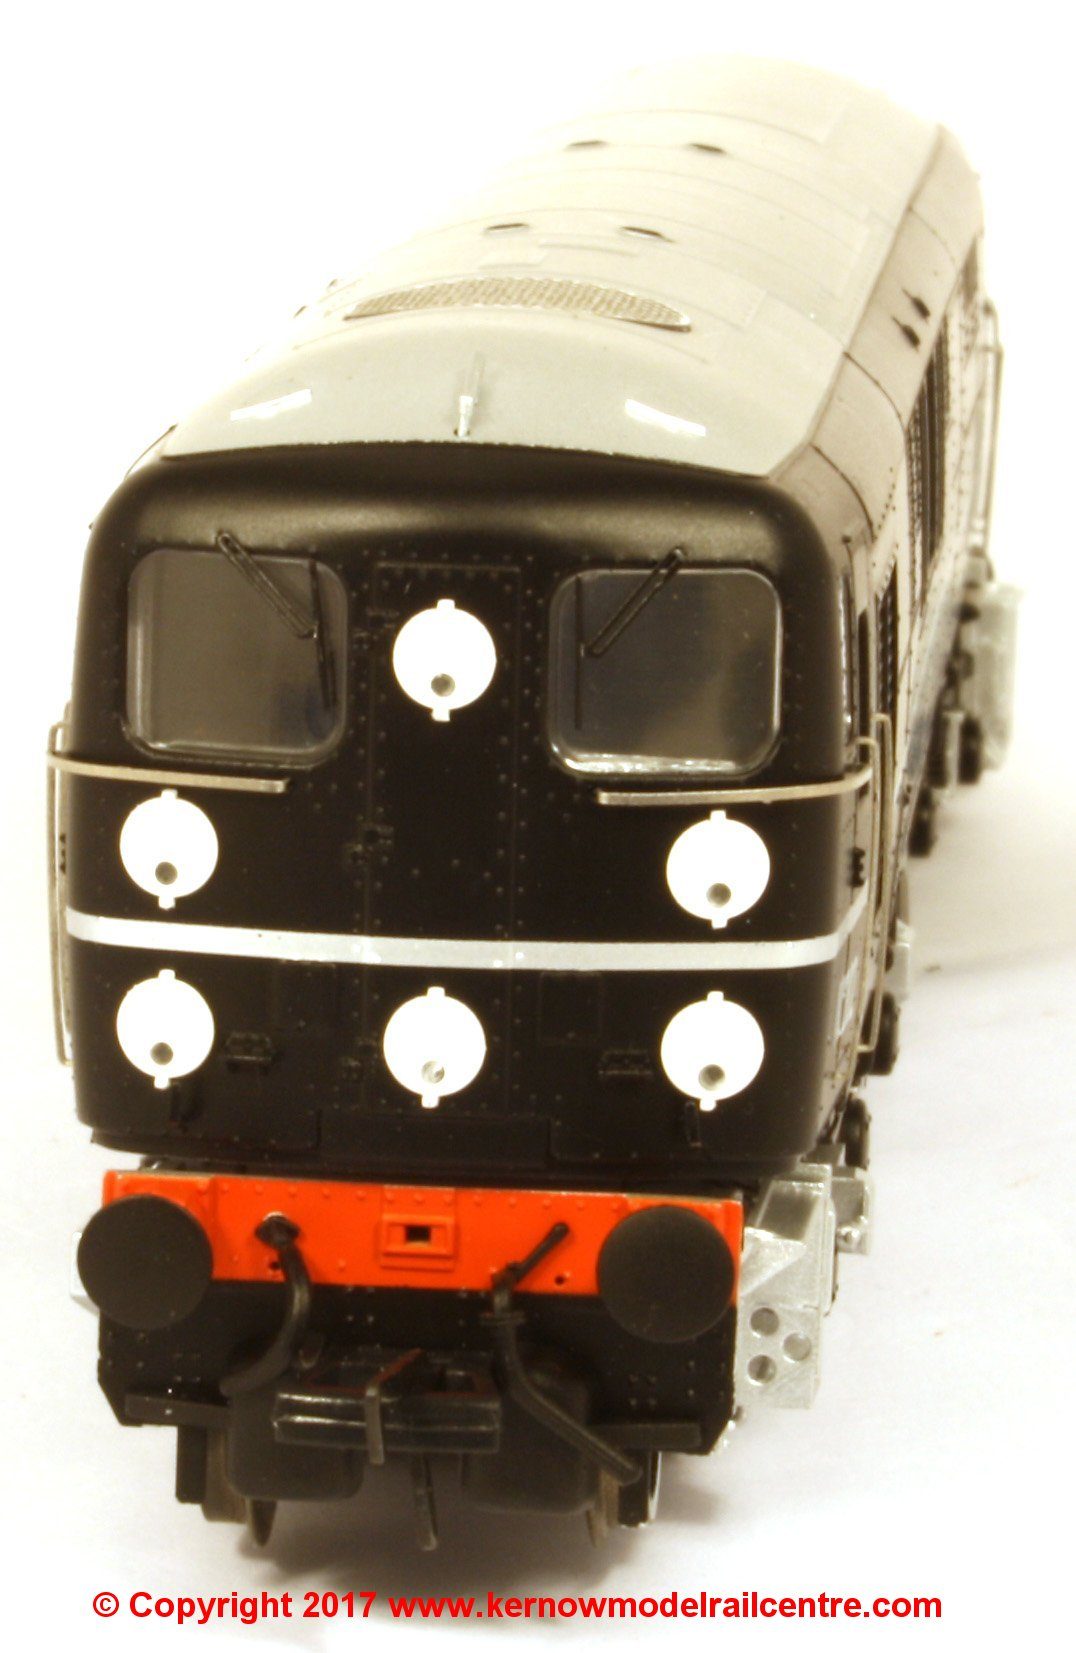 K2702 Bulleid 1-Co-Co-1 Diesel Locomotive number 10202 in BR Black livery with early emblem